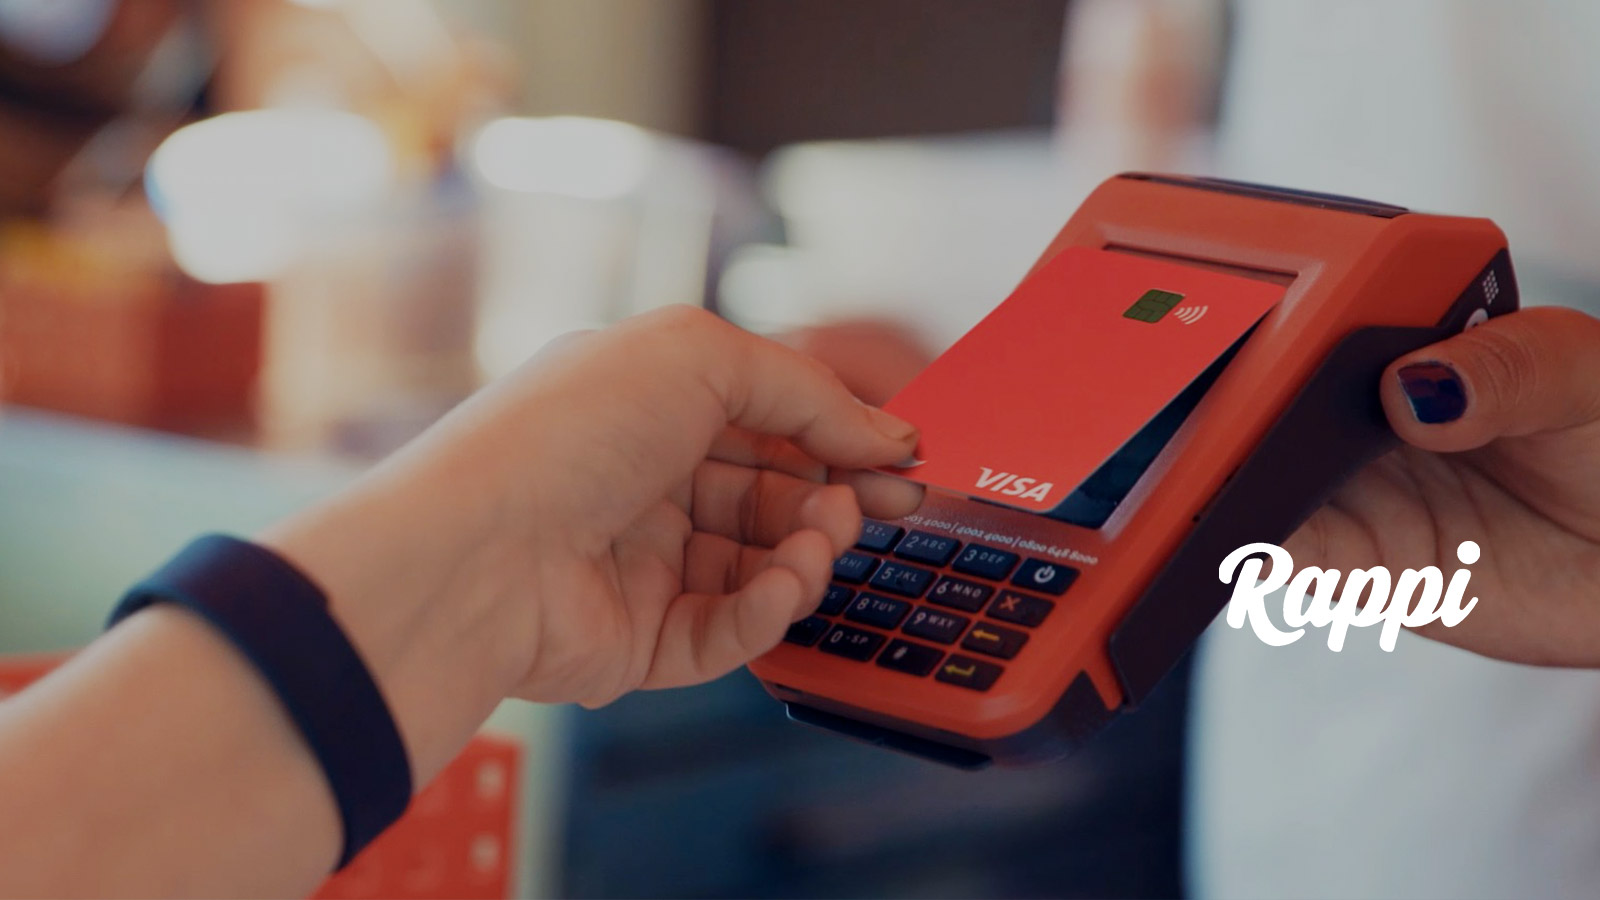 Person using Rappi card at point-of-sale.